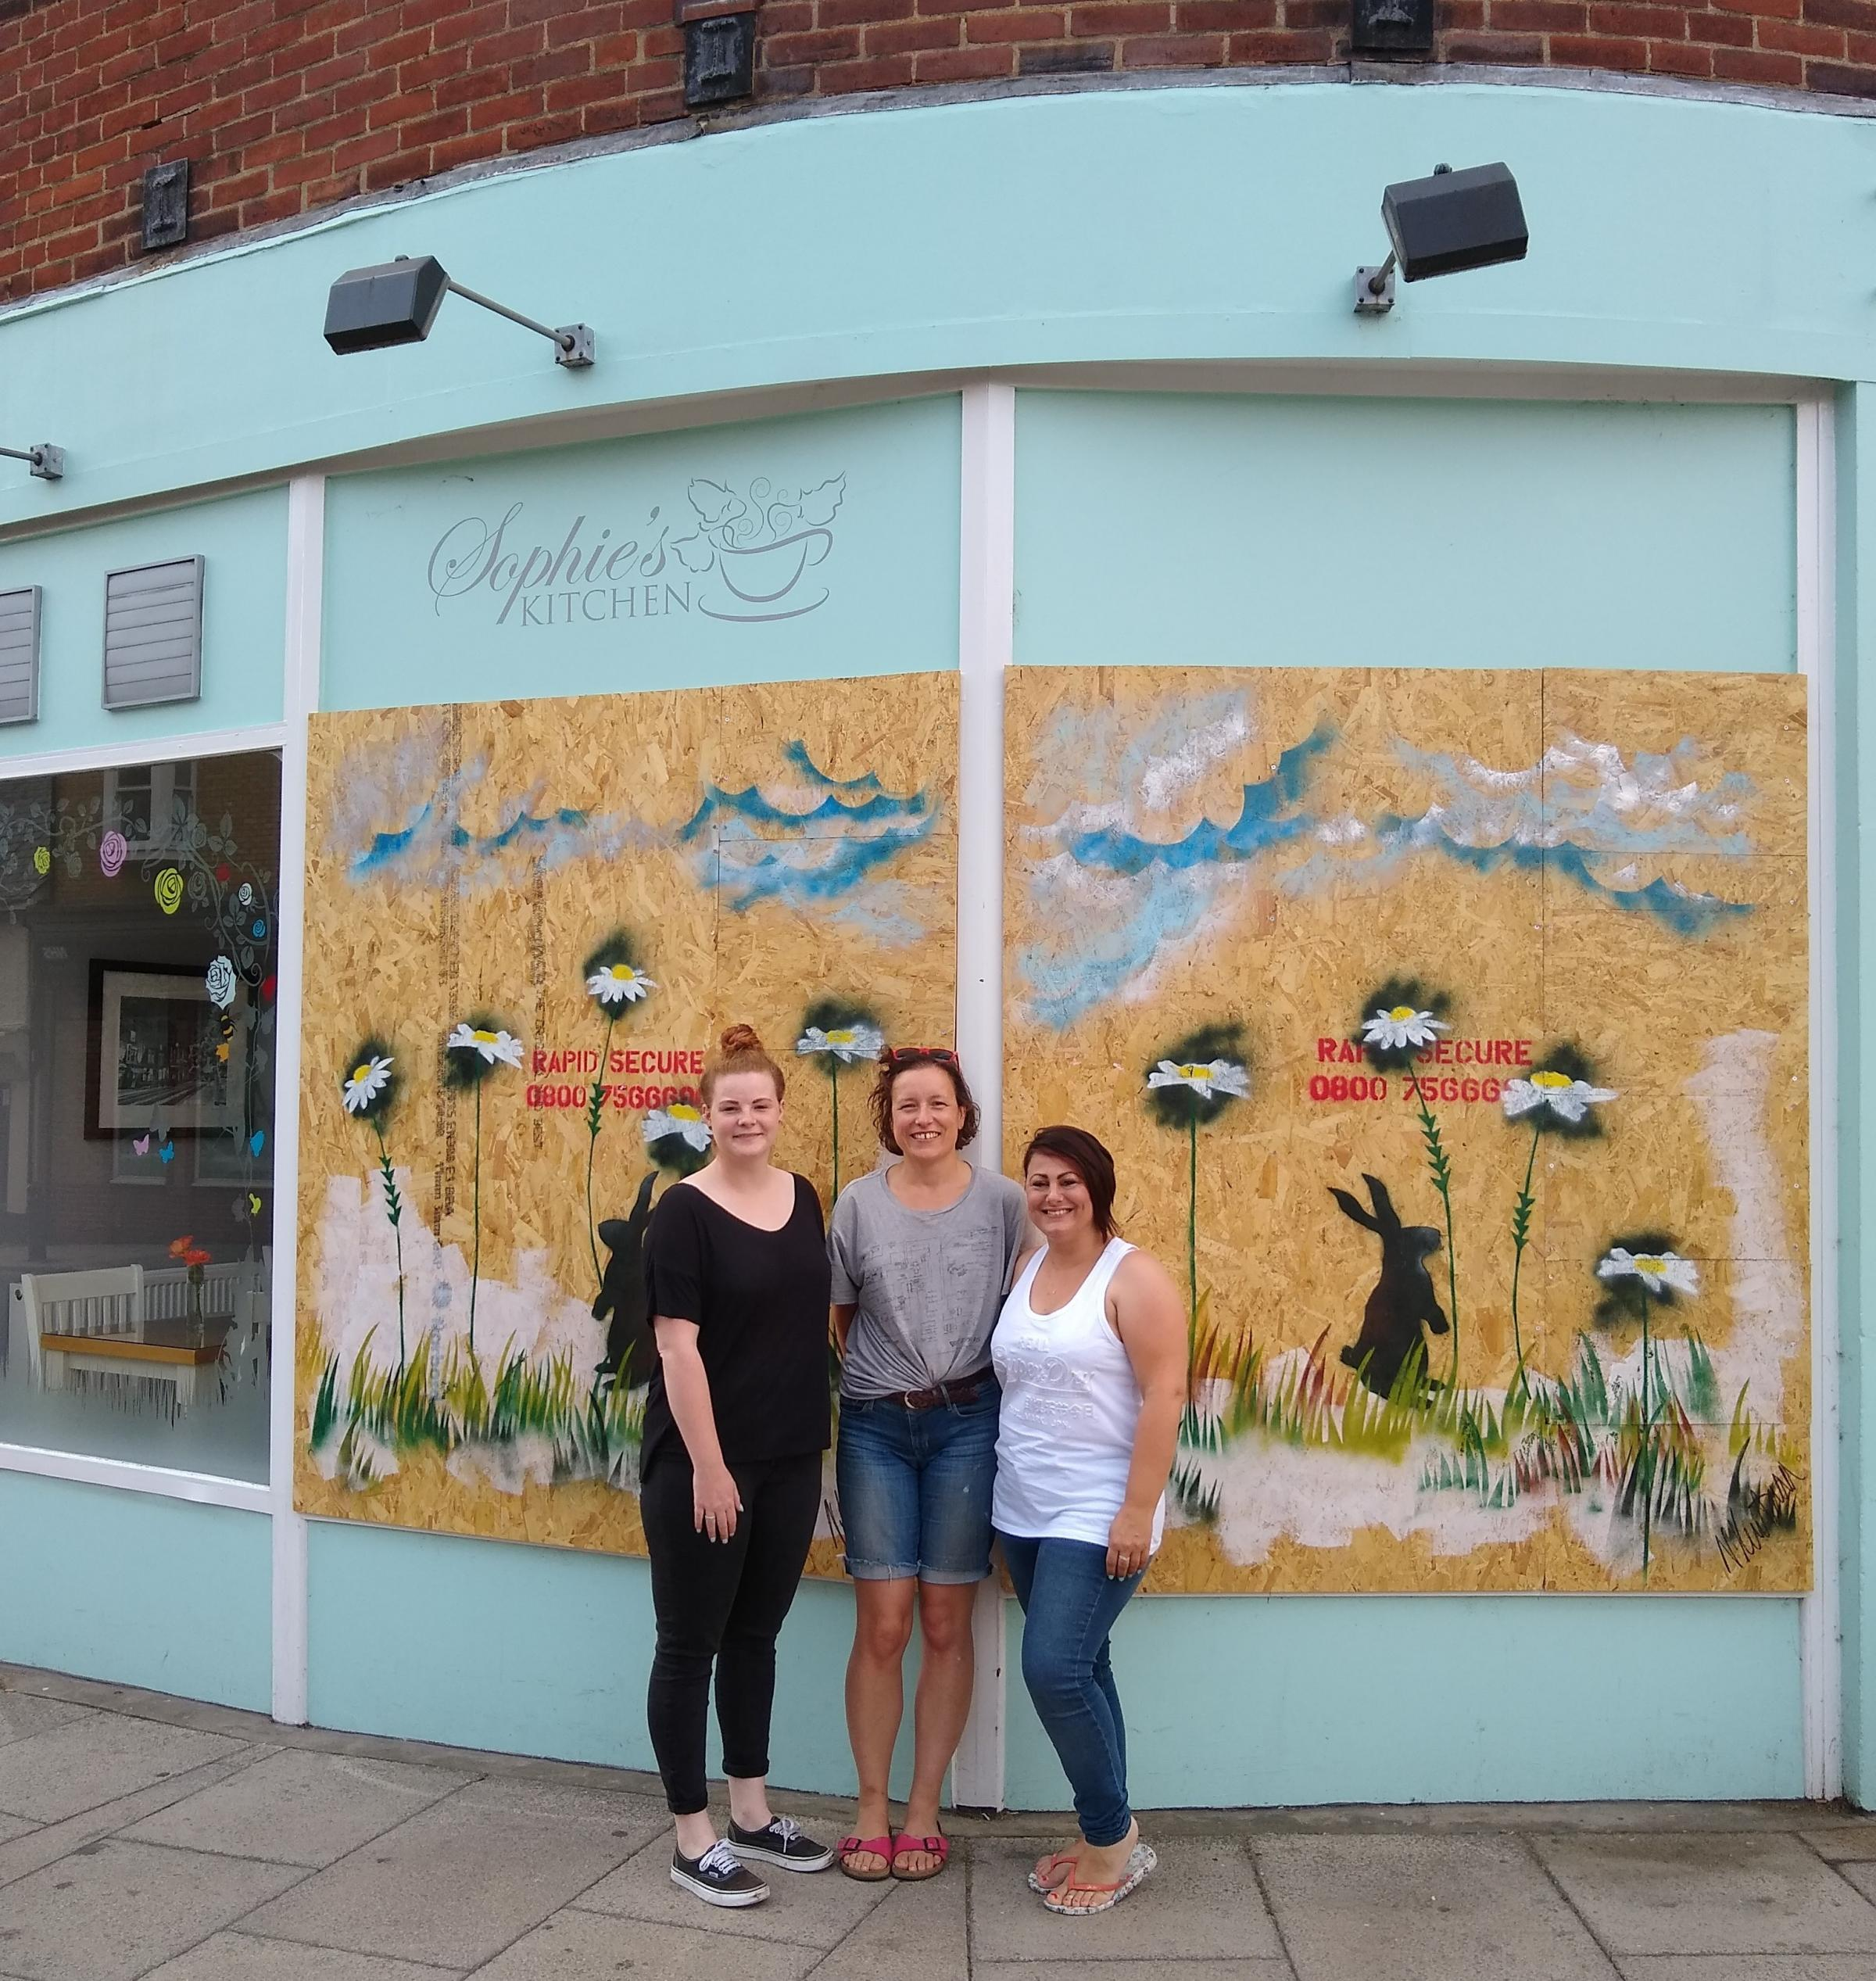 Community: Manager Sophie Hale, artist Natalie Huntsman and owner Sophie Spink outside the decorated shop front. Sophie's Kitchen is open for business as usual